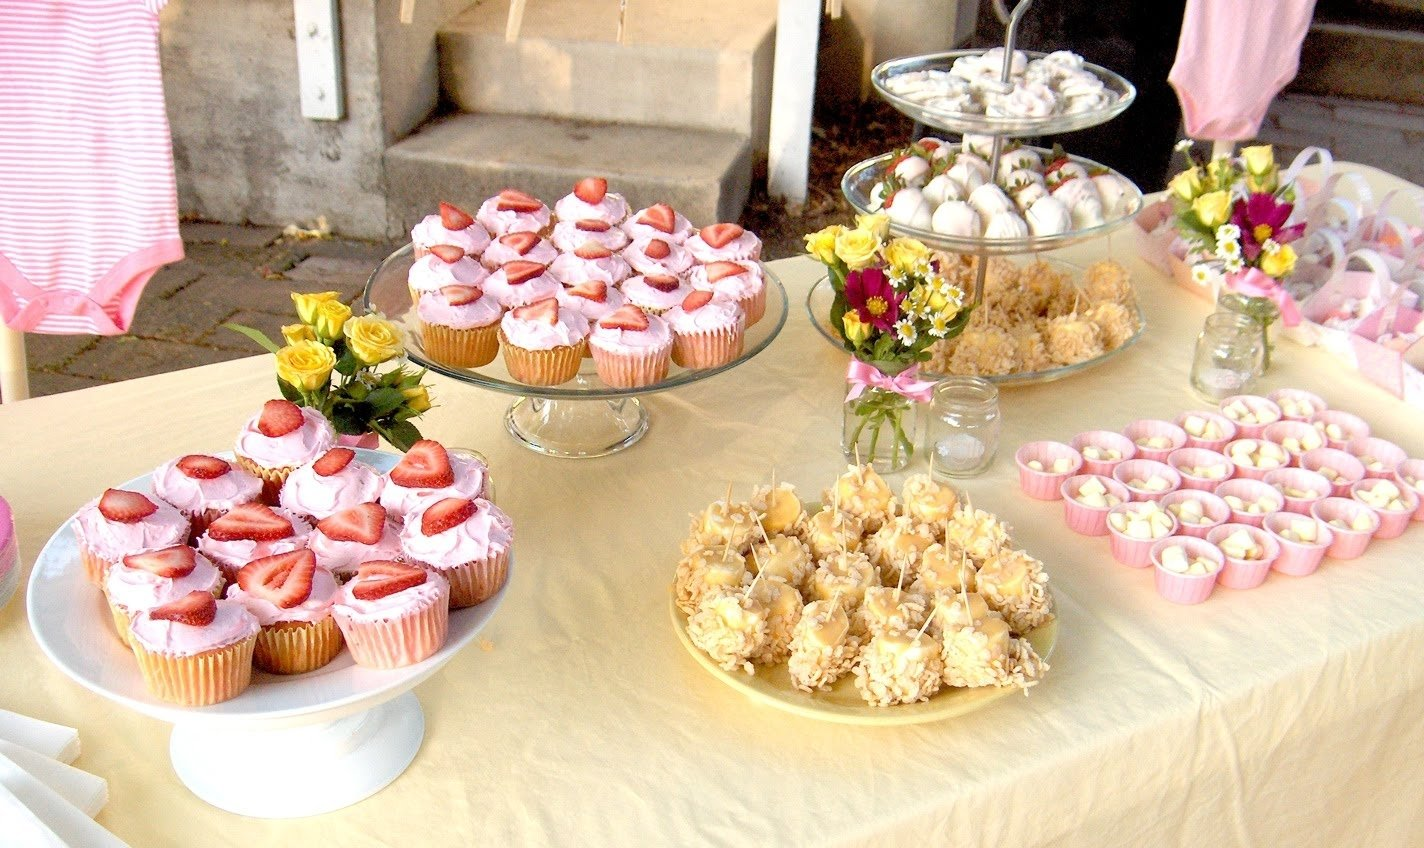 10 Stylish Food For Baby Shower Ideas simple baby shower food wedding 3 2020